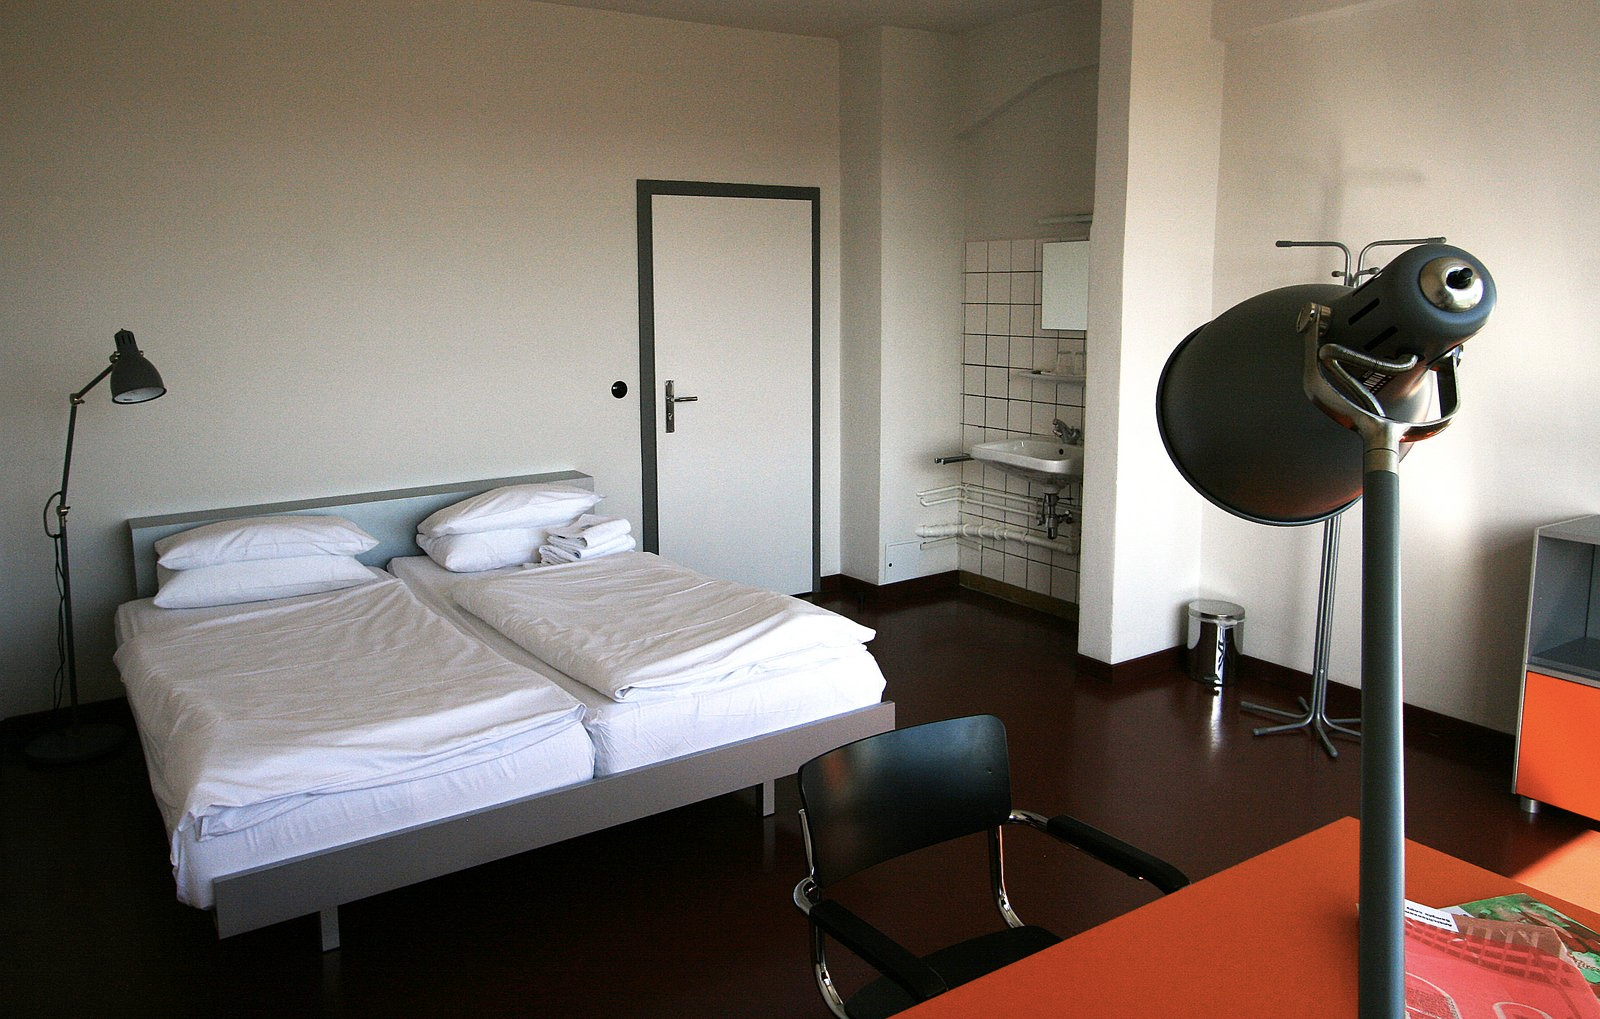 Where to experience the Bauhaus in 2019: spend the night at Prellerhaus